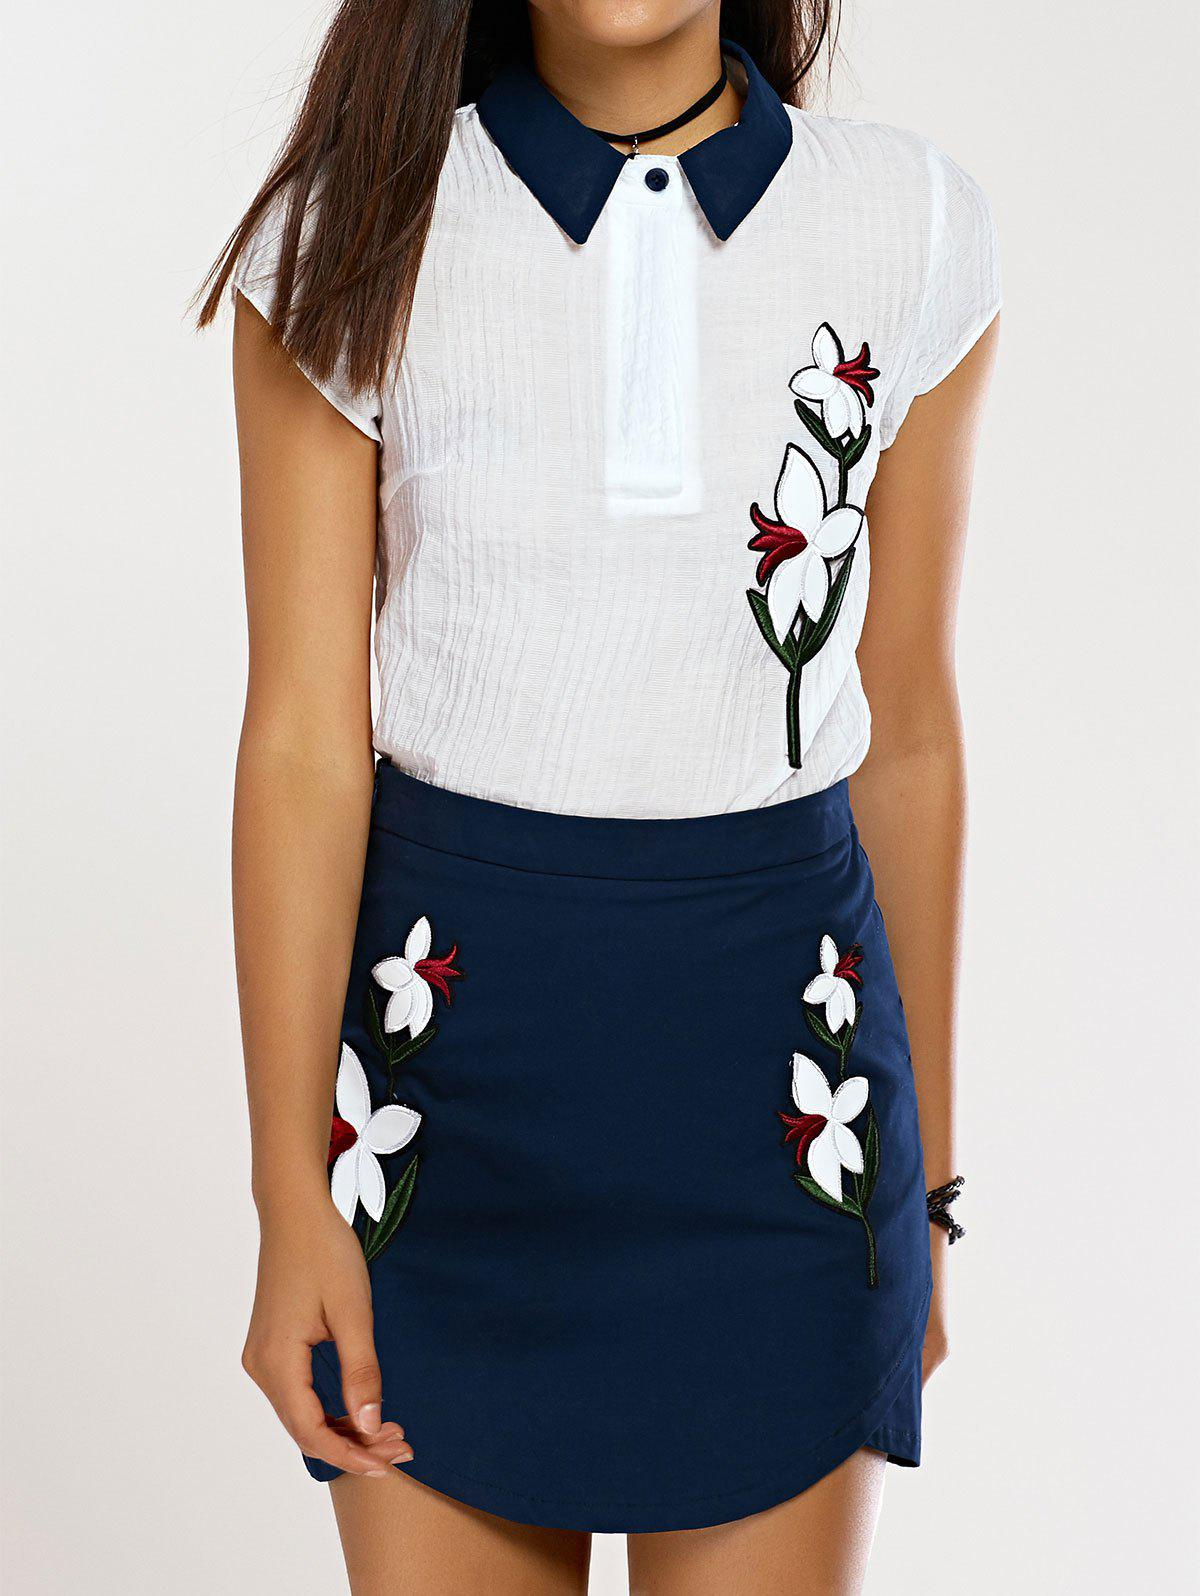 Flat Collar Top and Floral Print Skirt - CADETBLUE / WHITE L